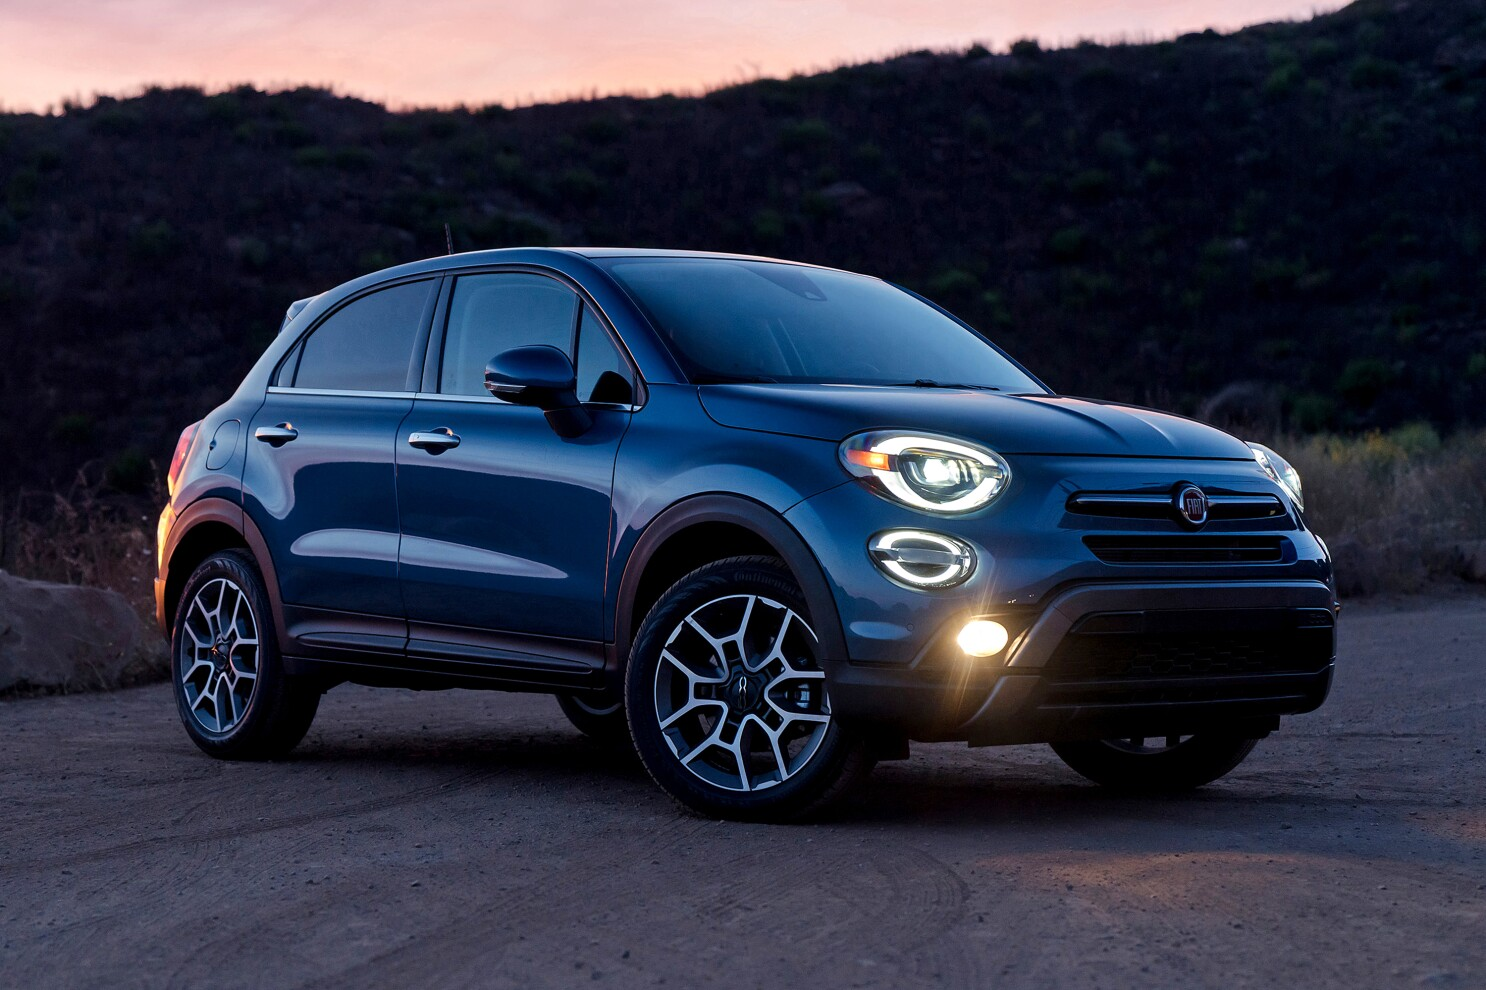 Review: The Fiat 500X is a sporty ride in a small package